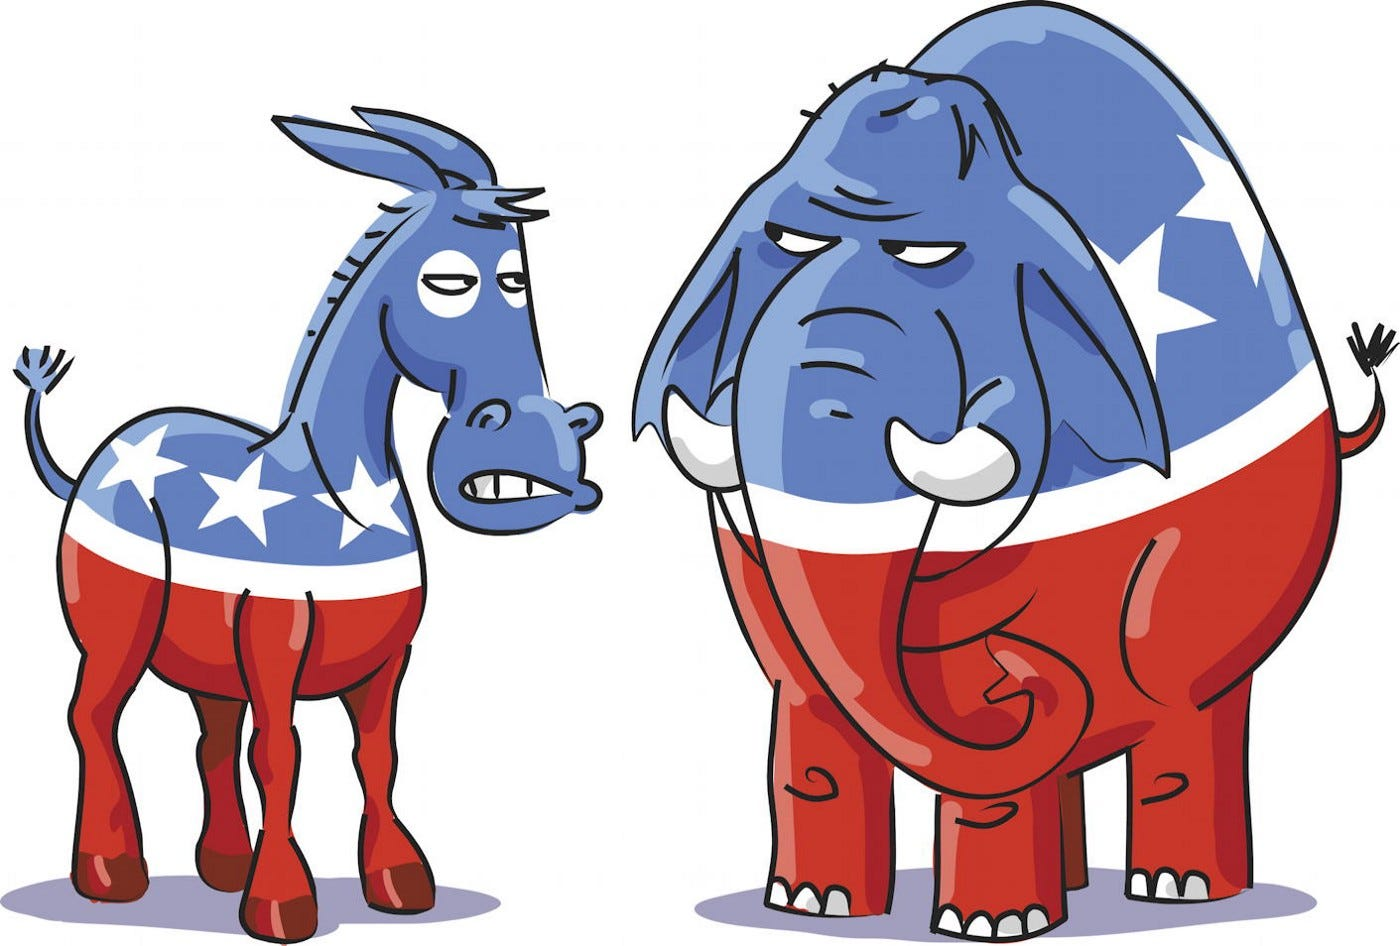 an angry Democratic donkey and Republican elephant looking at each other